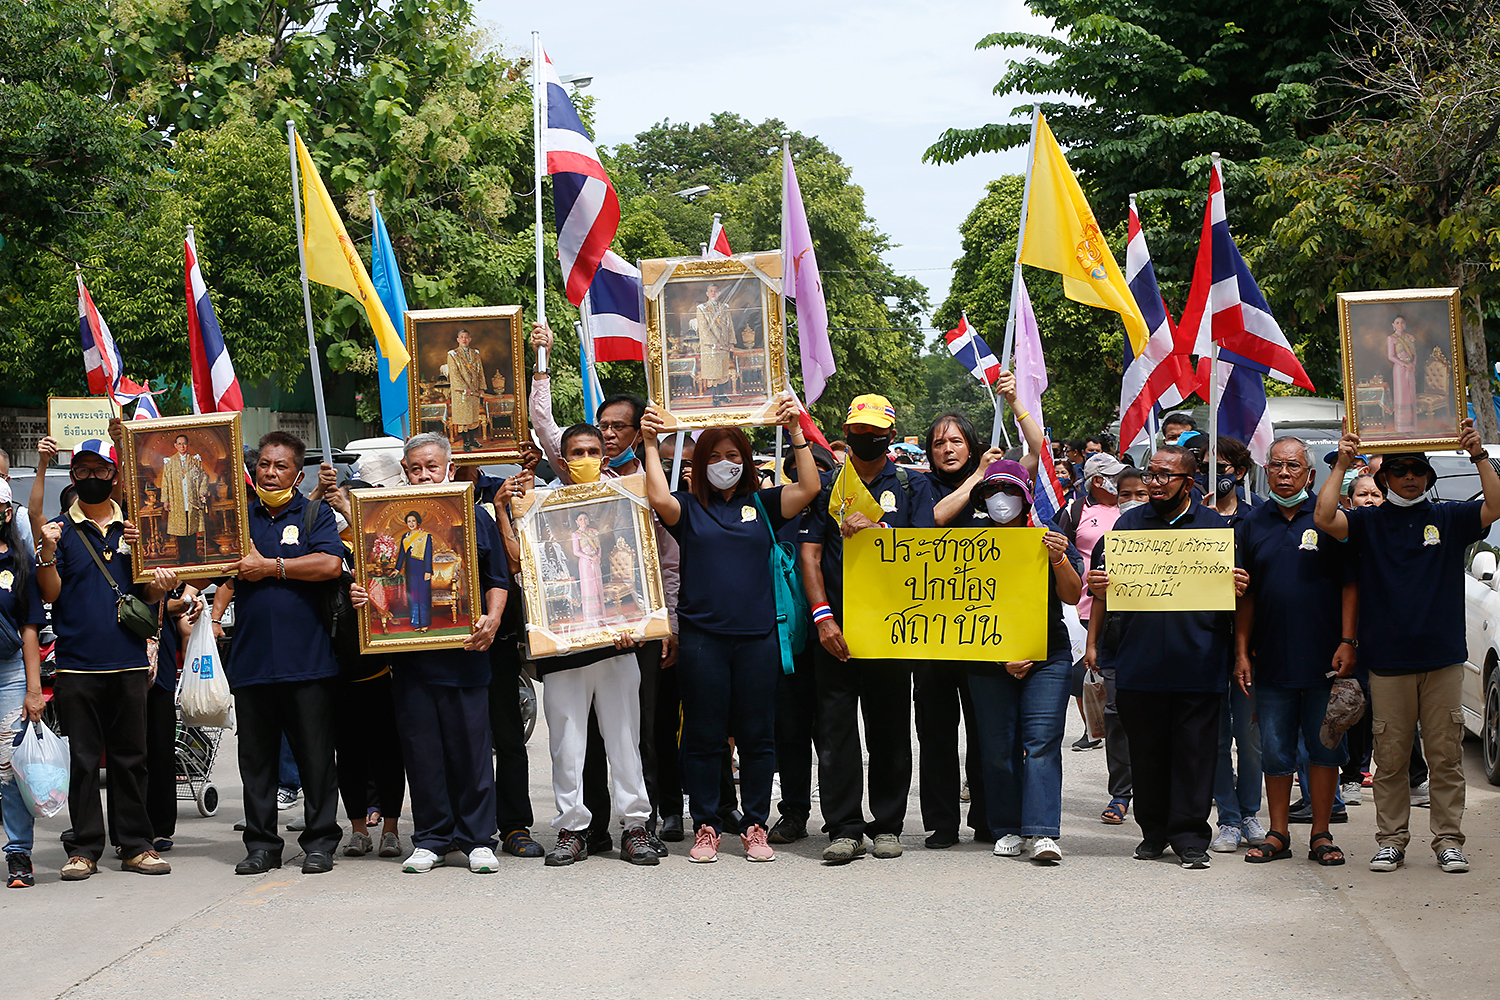 For king and country: A group of royalist supporters hold framed pictures of members of the royal family as they rally outside parliament and call on the government to protect the institution on Monday. (Photo by Pornprom Satrabhaya)